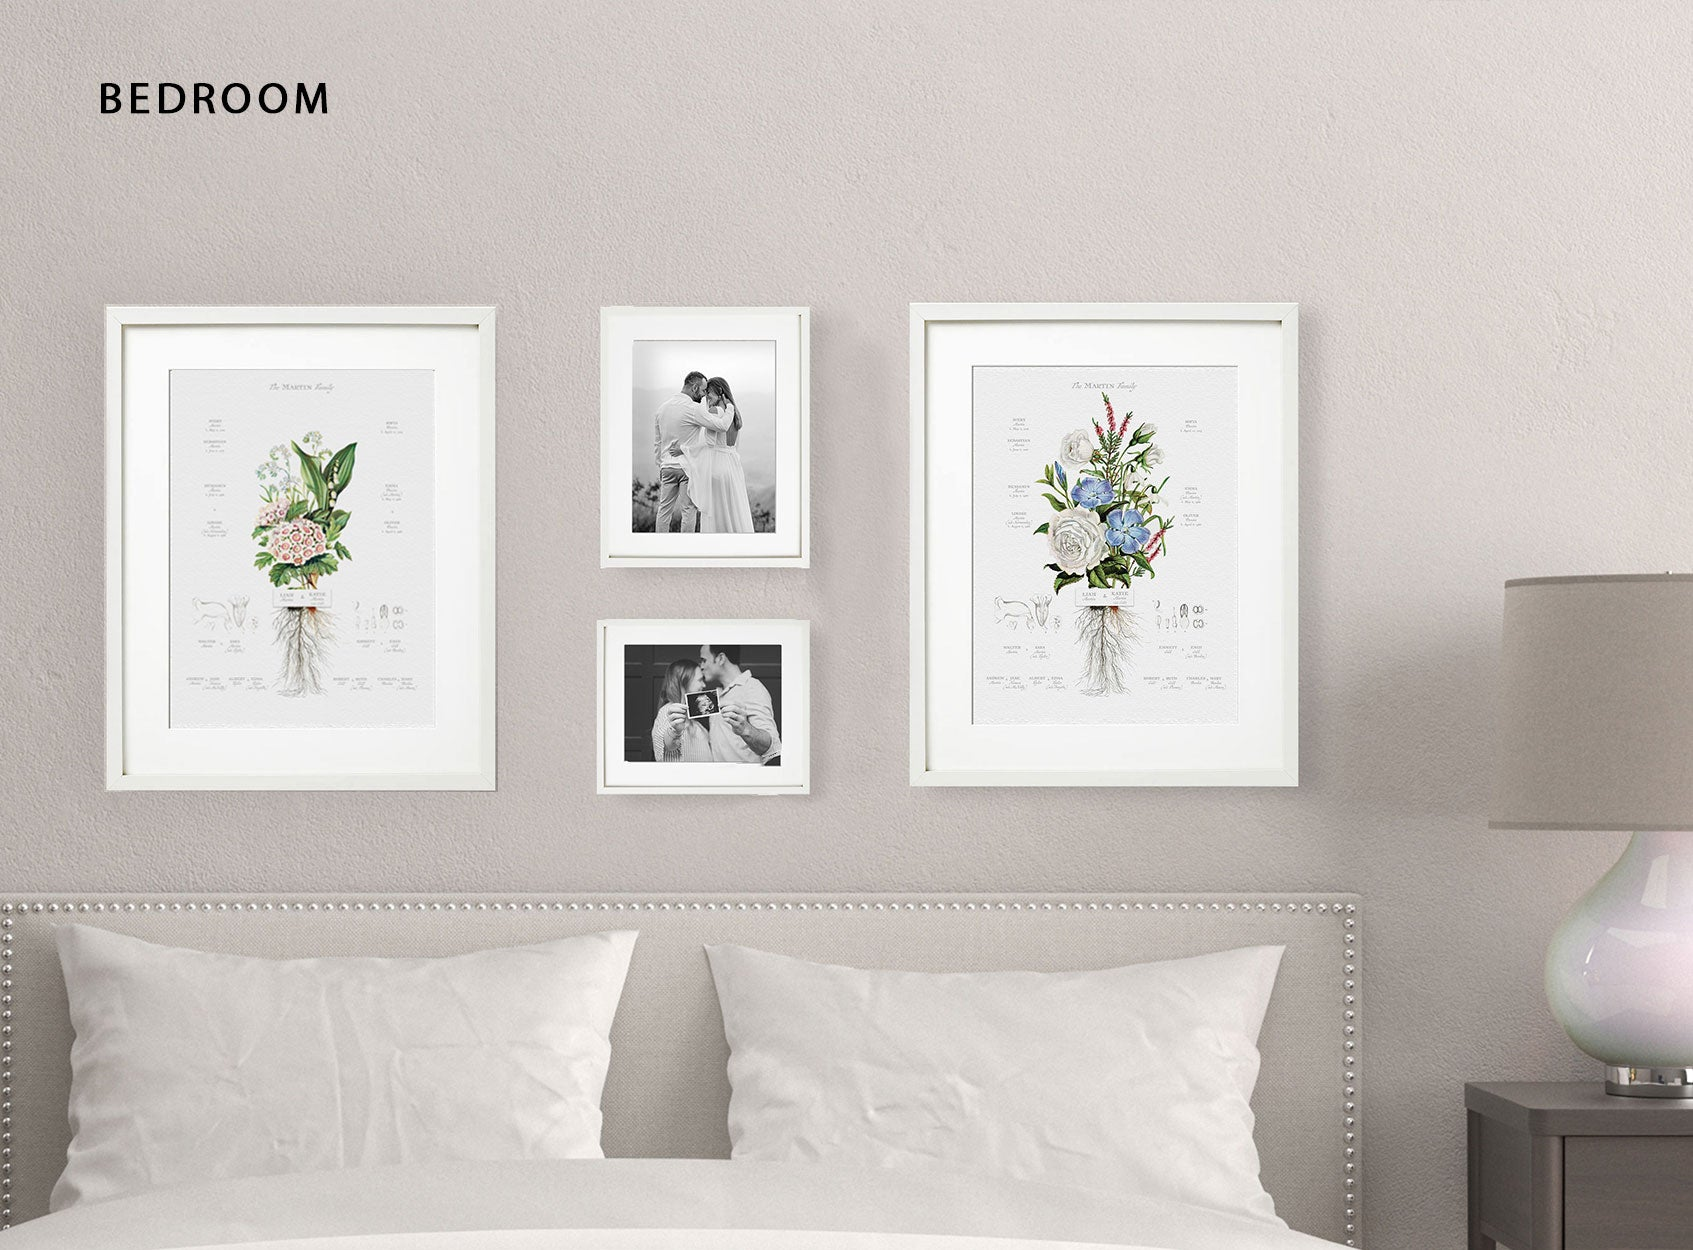 Gallery Wall Bedroom Lifestyle Image